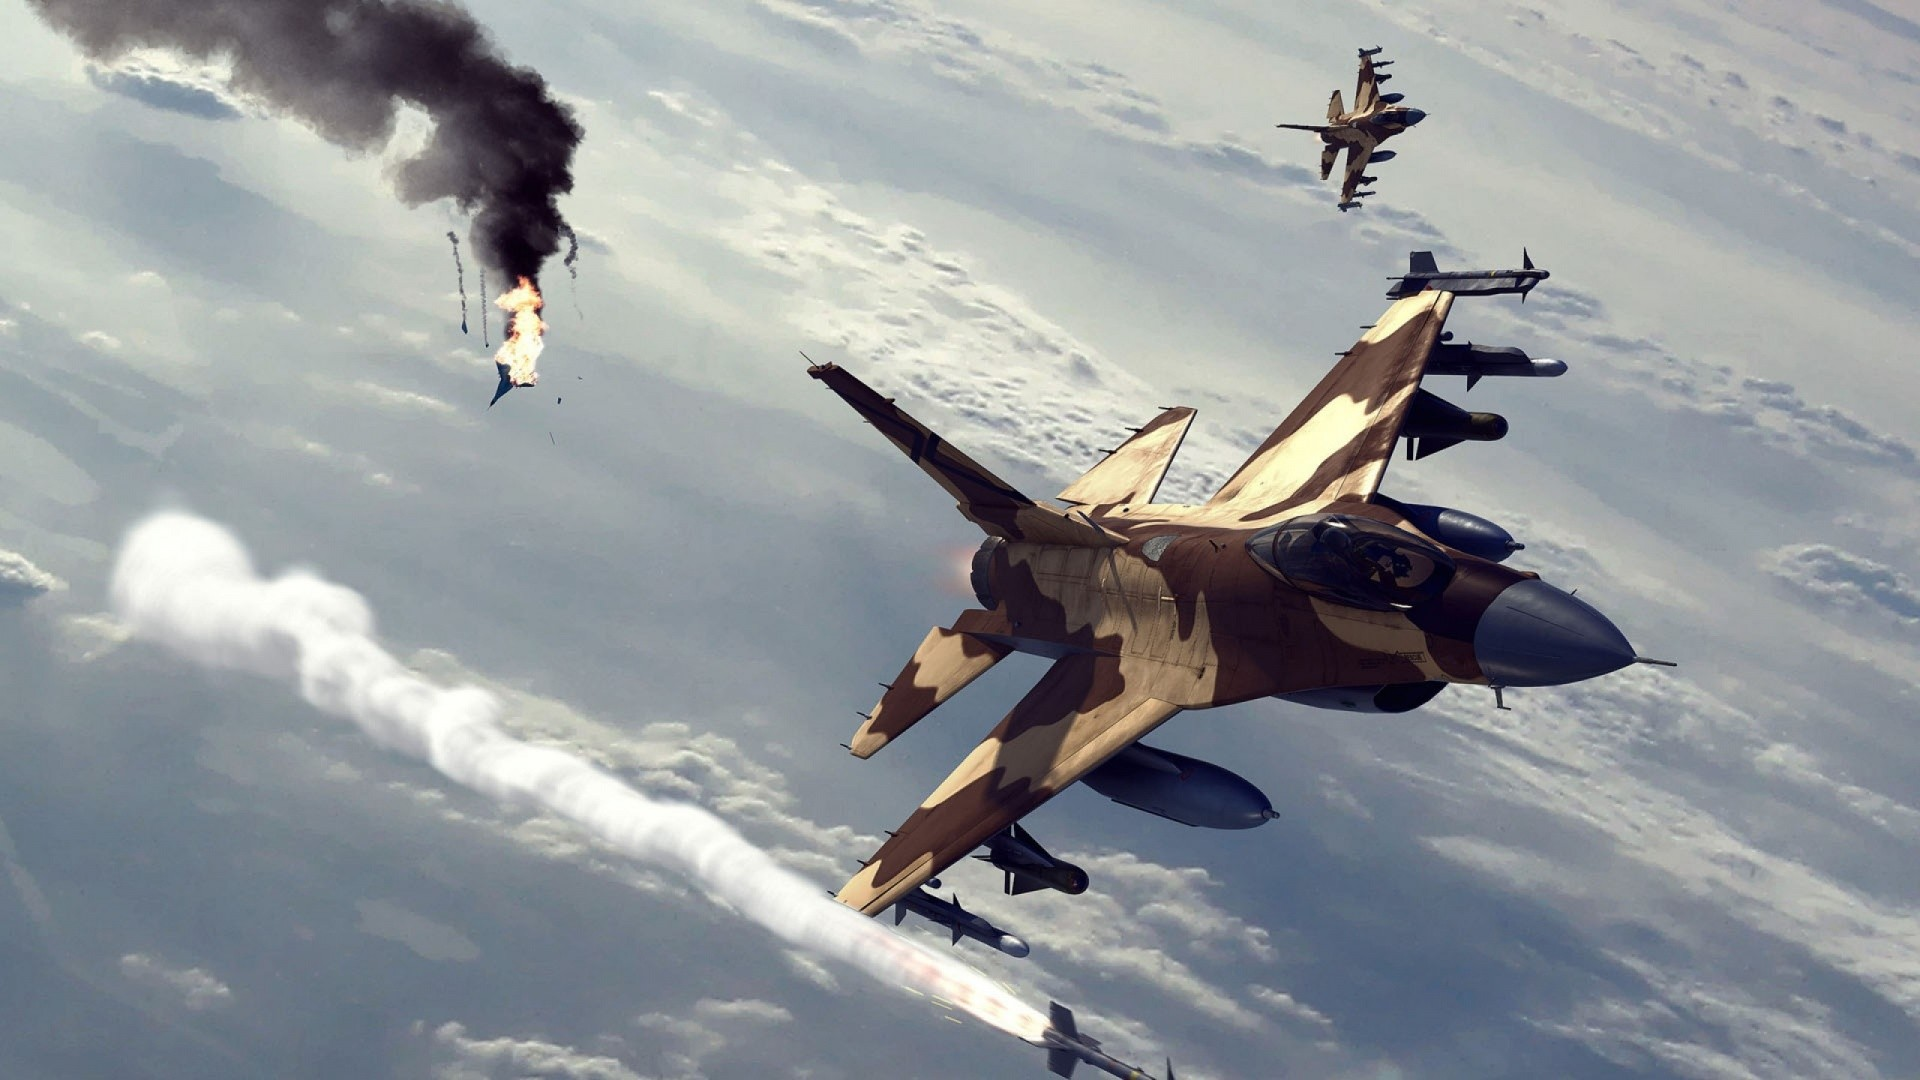 Fighter Aircraft Flying Wallpapers #27235 Wallpaper